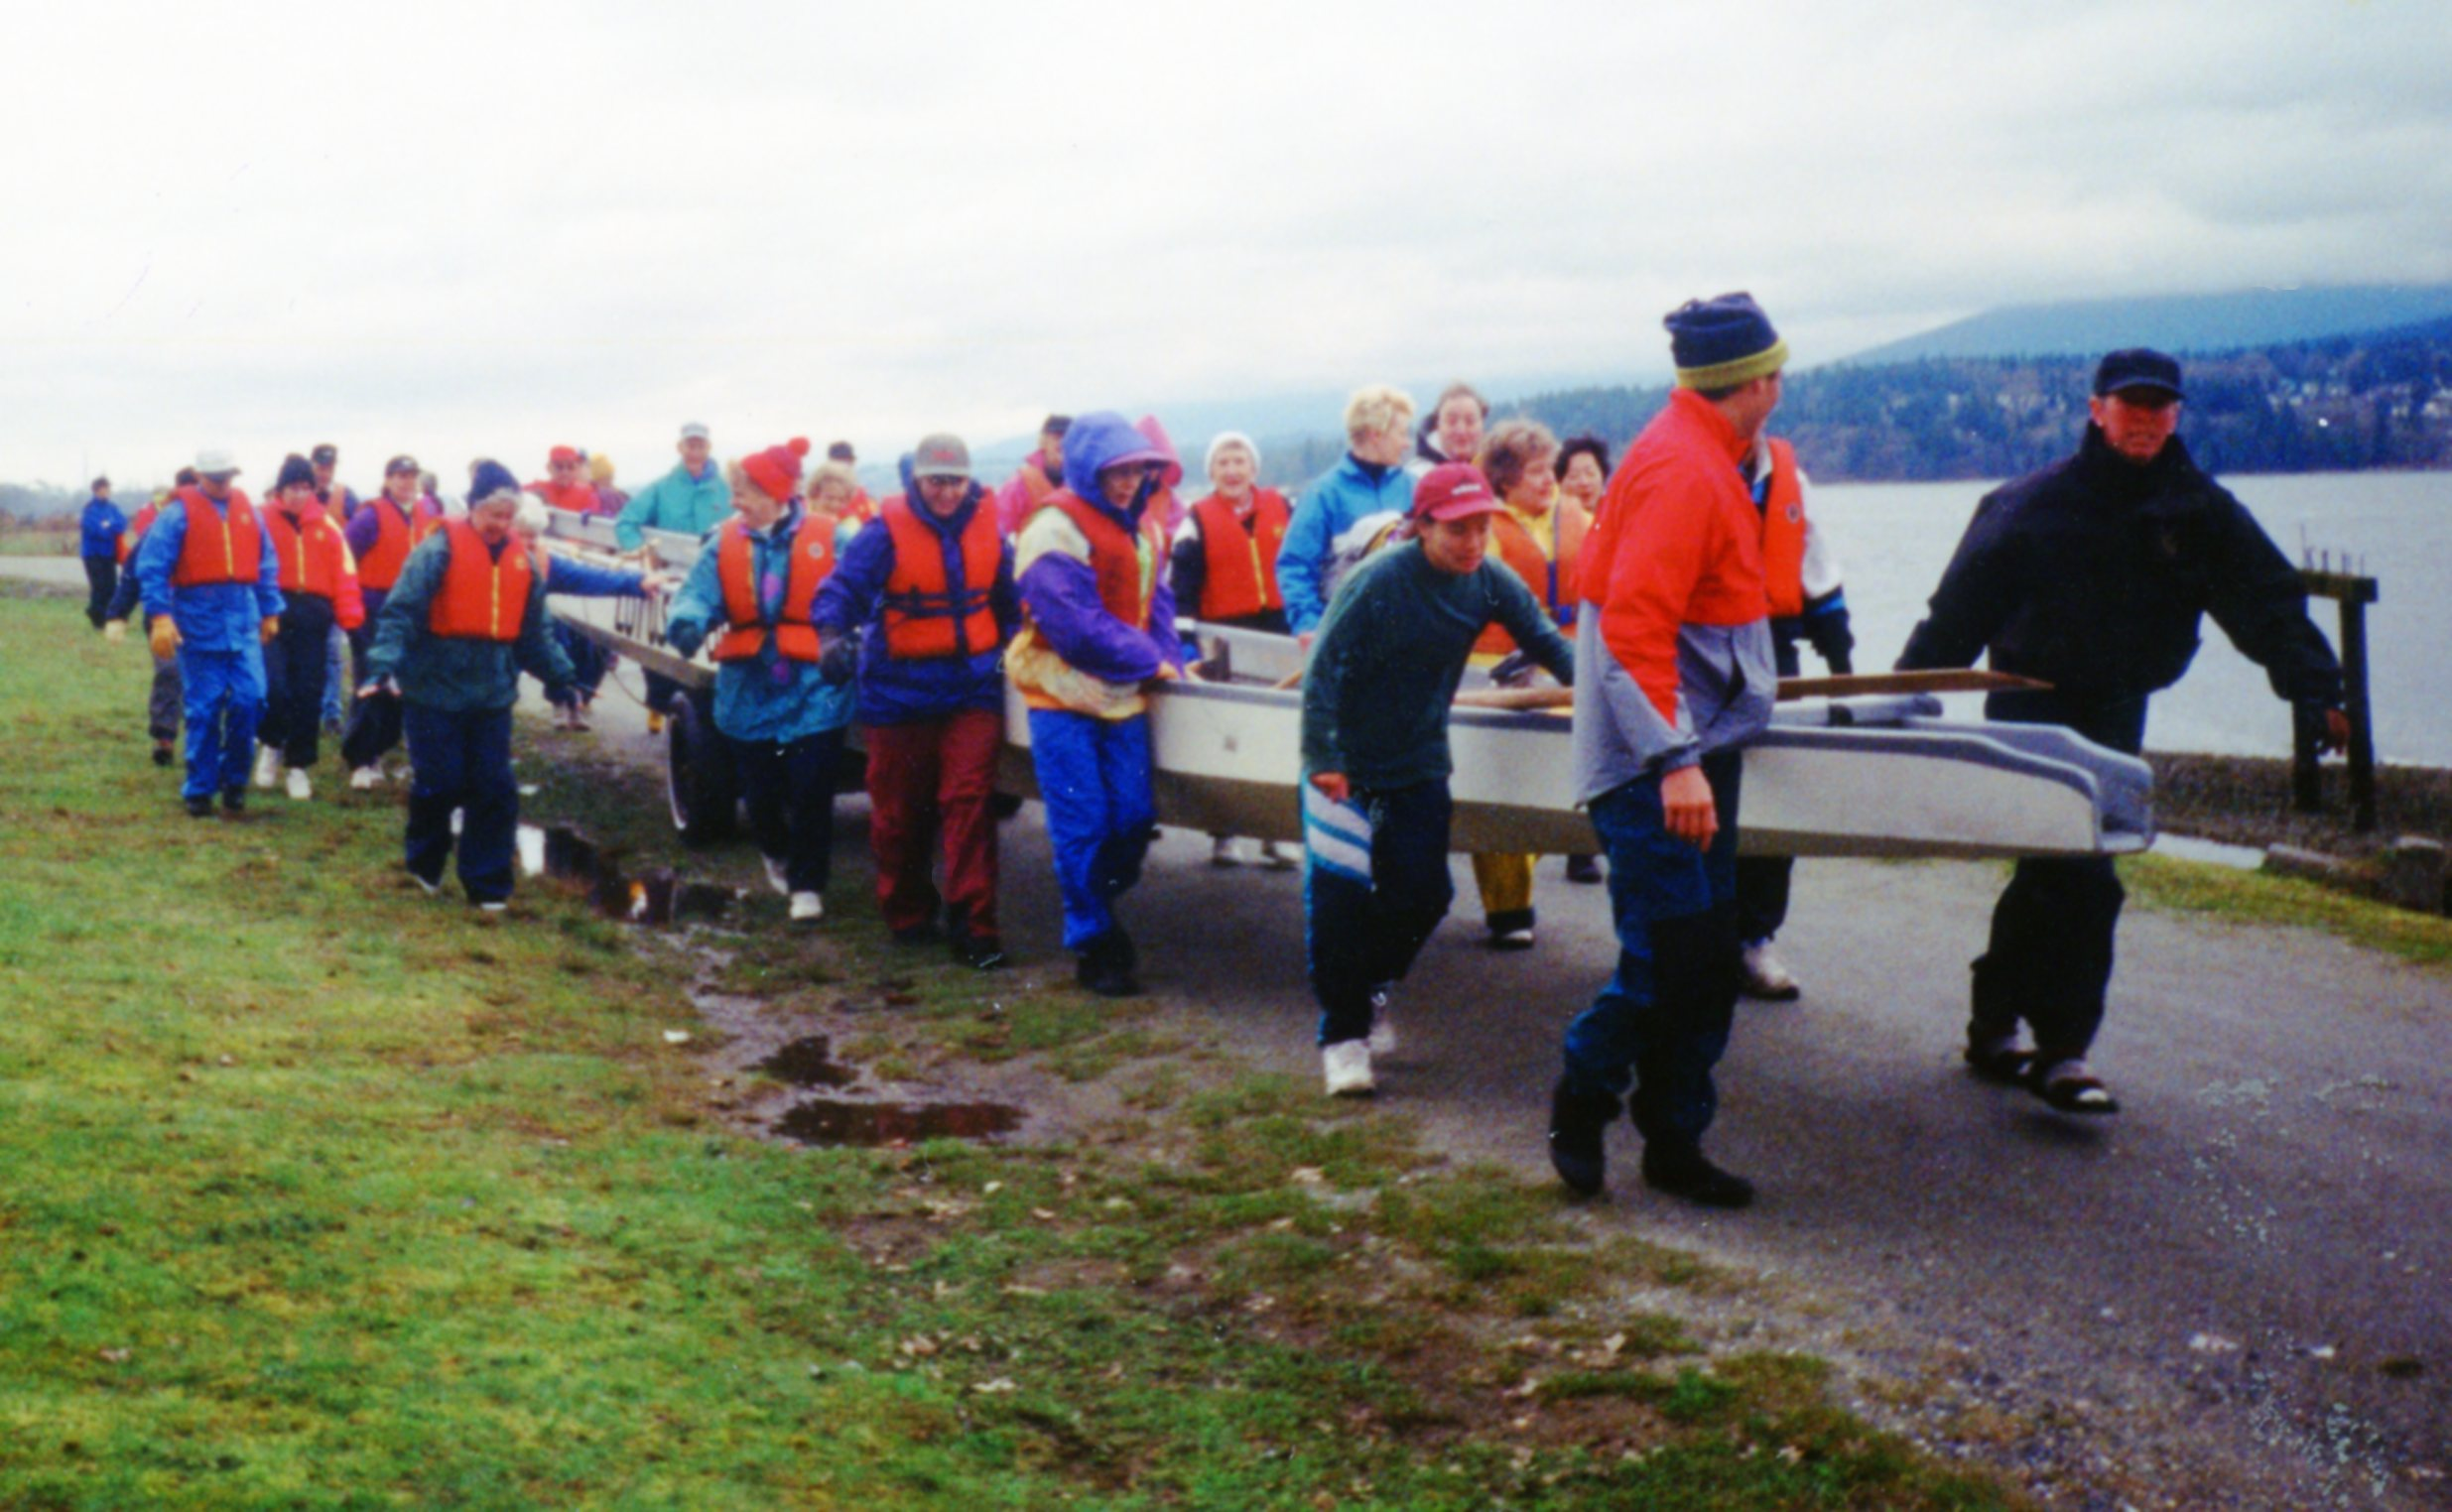 Lotus boats were rented and hauled down to Barnet Beach (Burrard Inlet) for training.